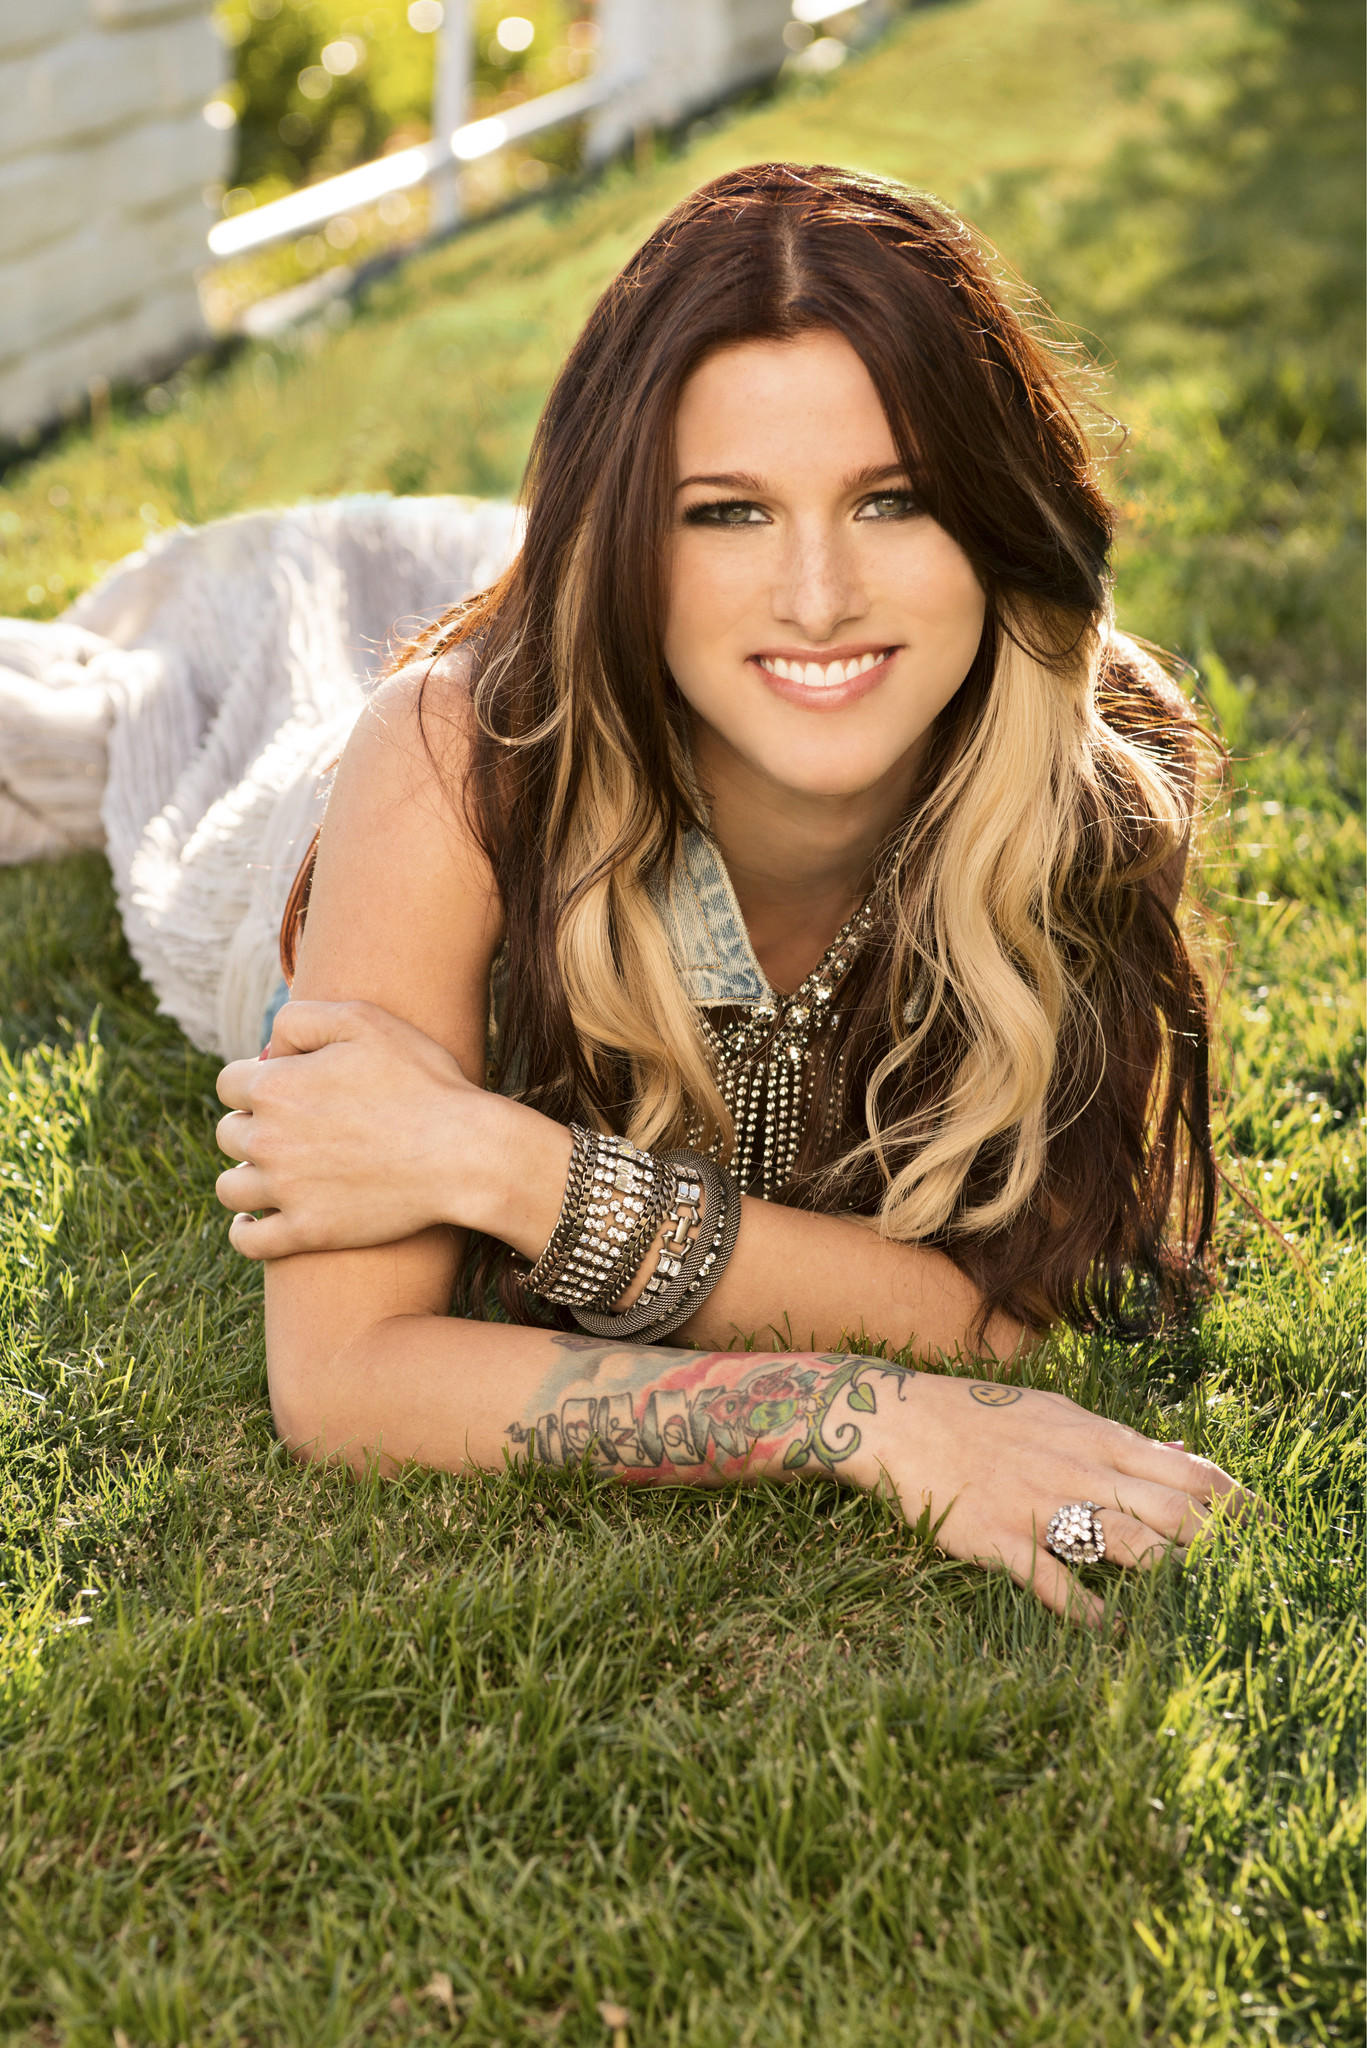 Last week, singer Cassadee Pope won Breakthrough Video of the Year at the CMT Music Awards.